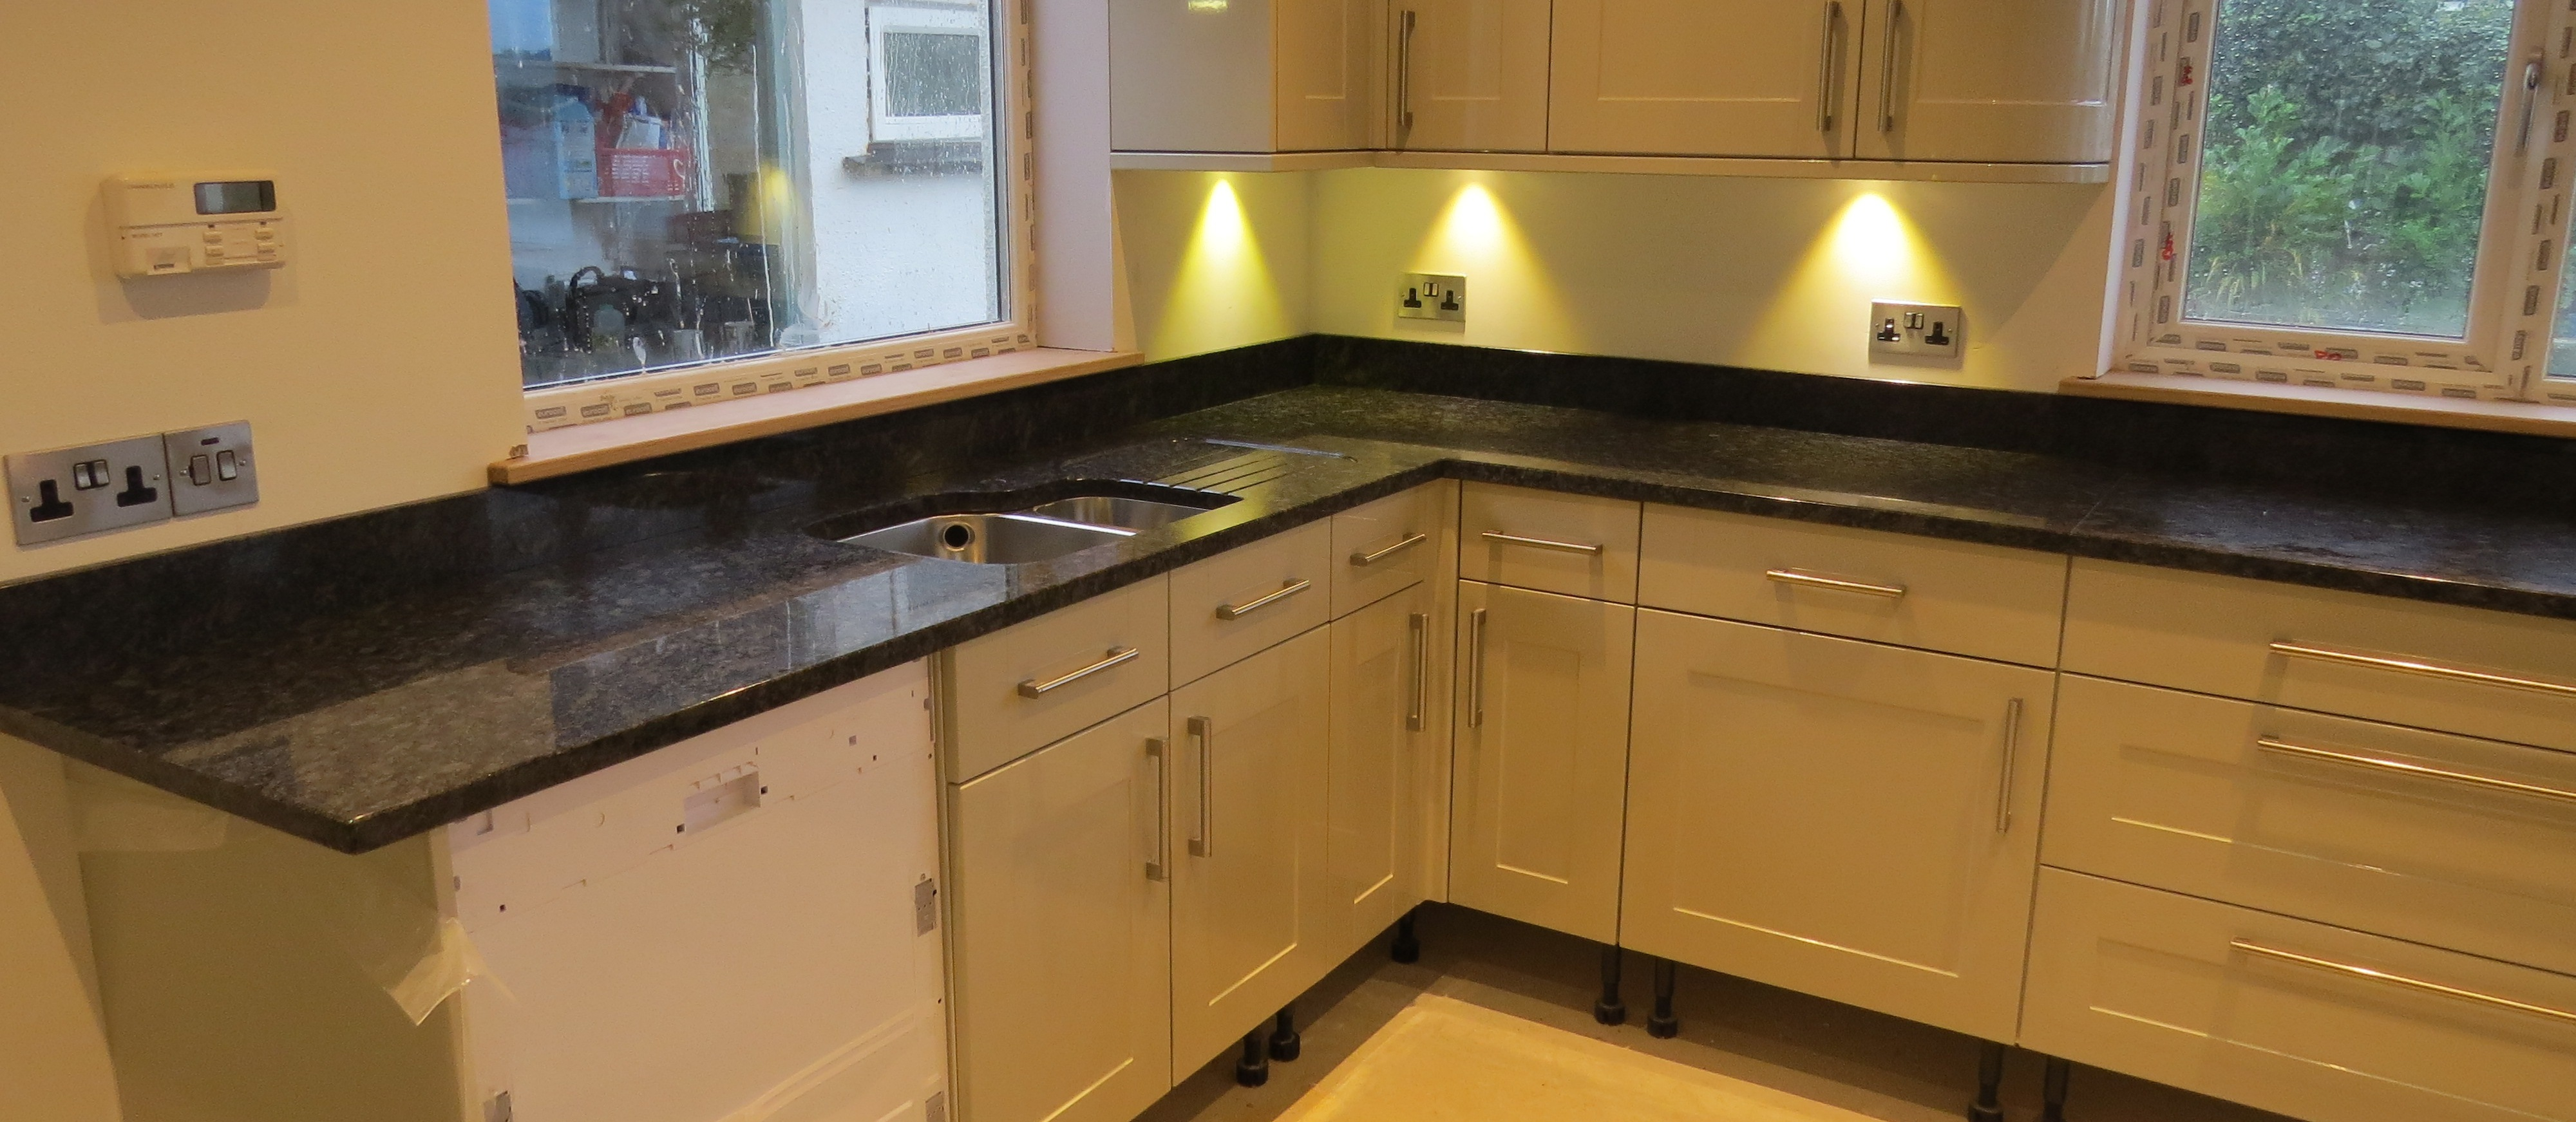 5 Popular Kitchen Worktops To Use In Your Home Designer